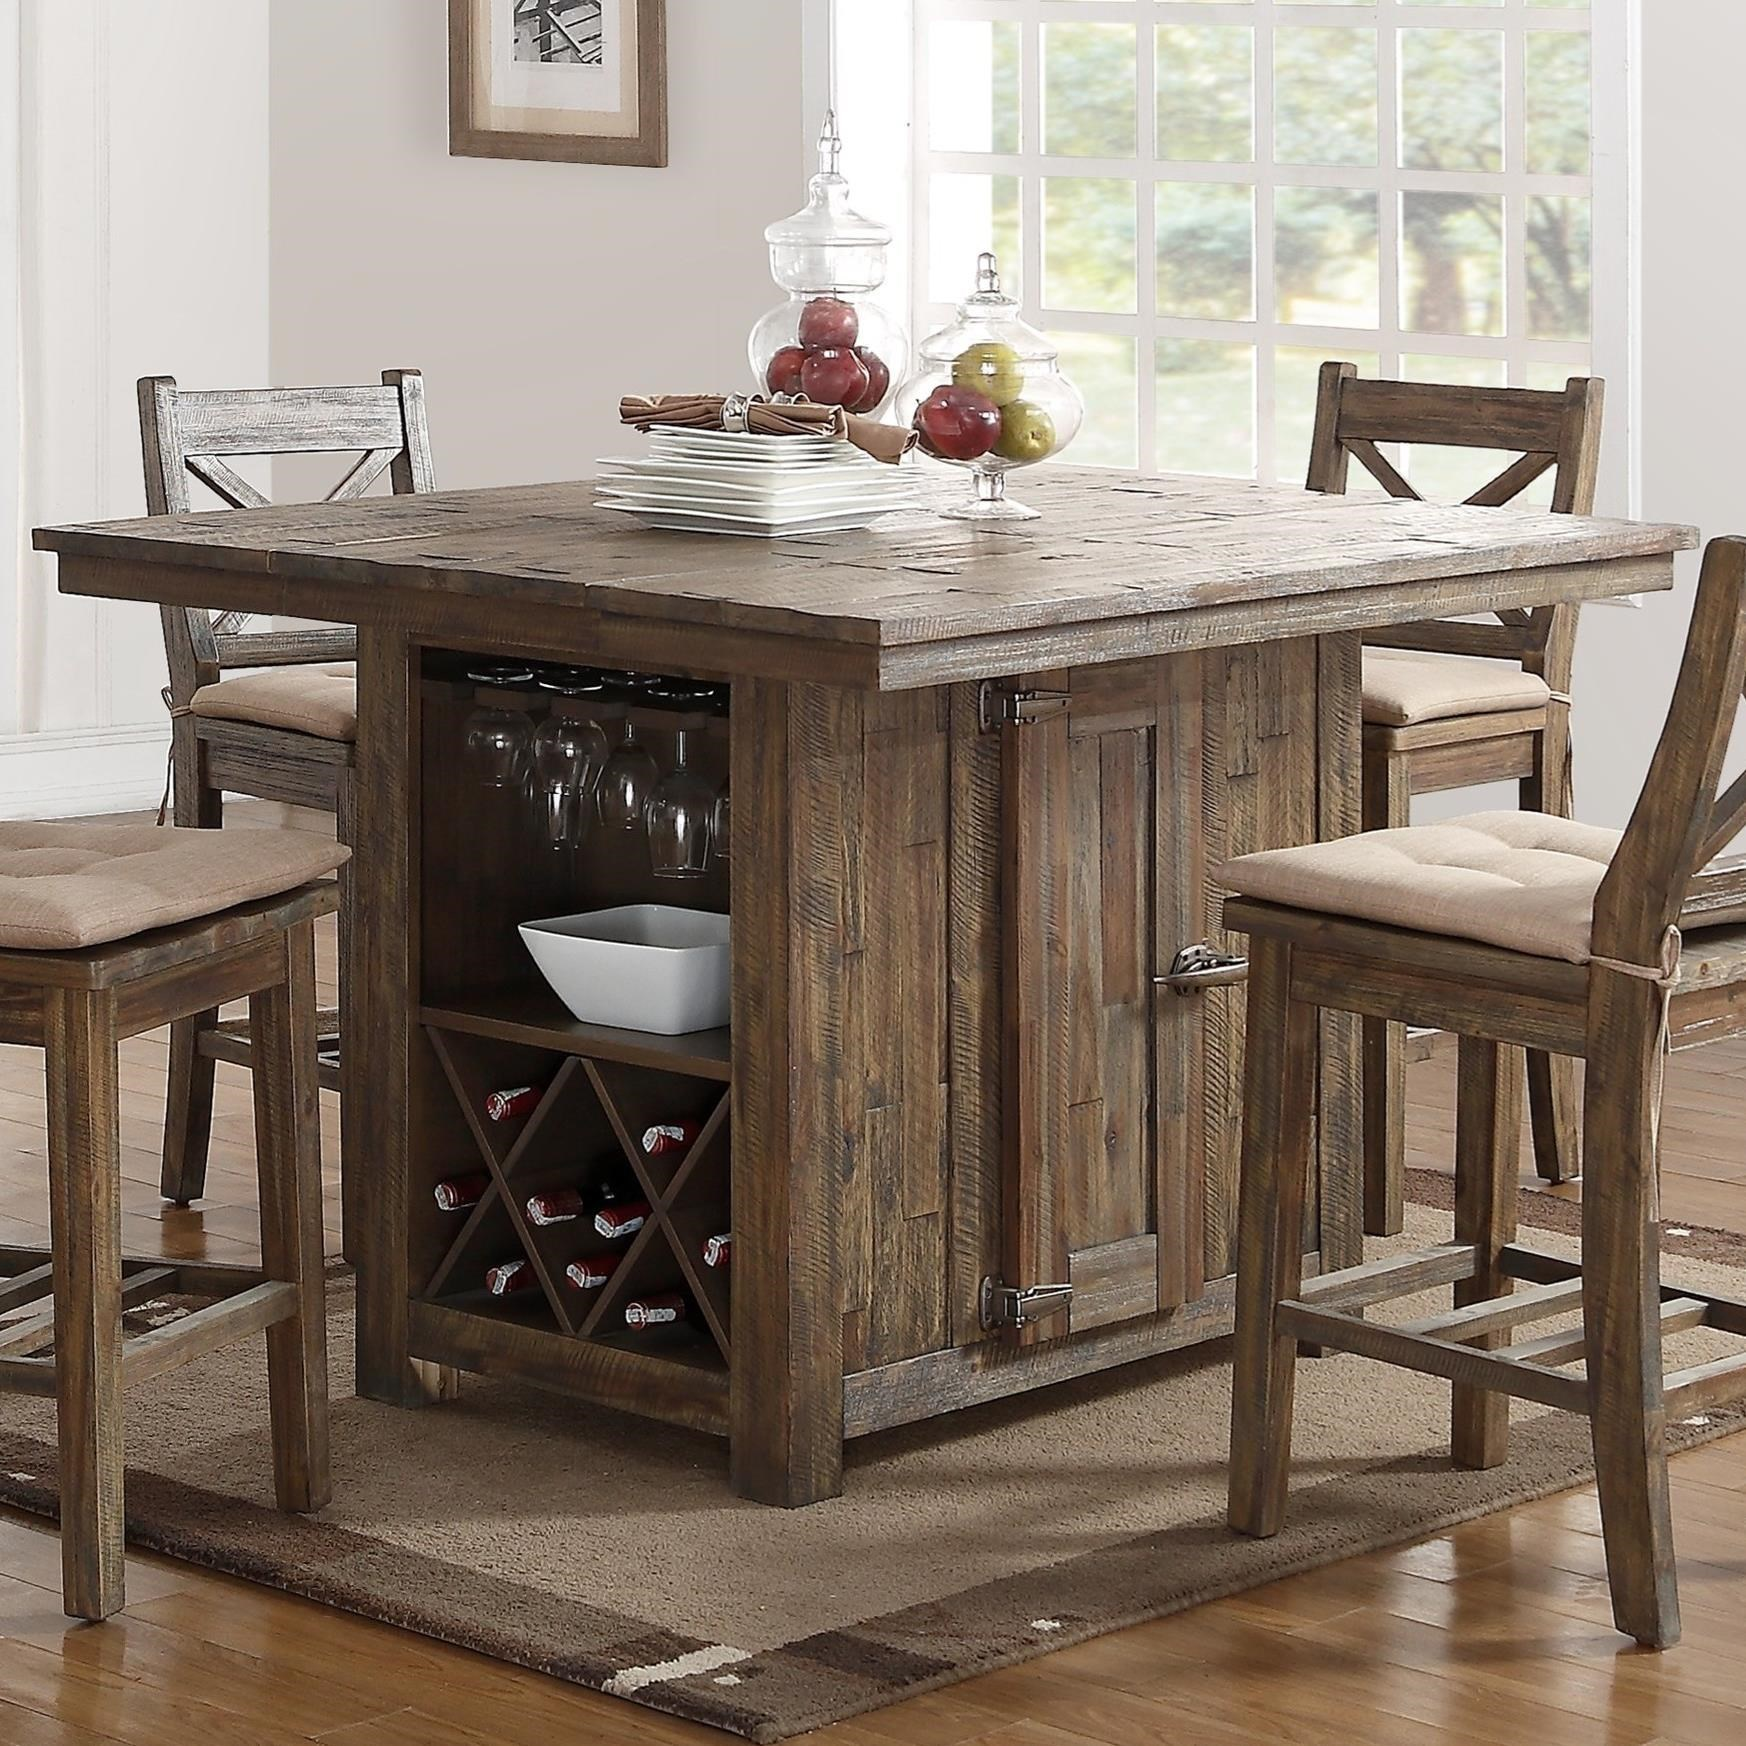 New Classic Tuscany ParkPub Table ...  sc 1 st  Miskelly Furniture & New Classic Tuscany Park Pub Table with Wine Glass and Bottle ...